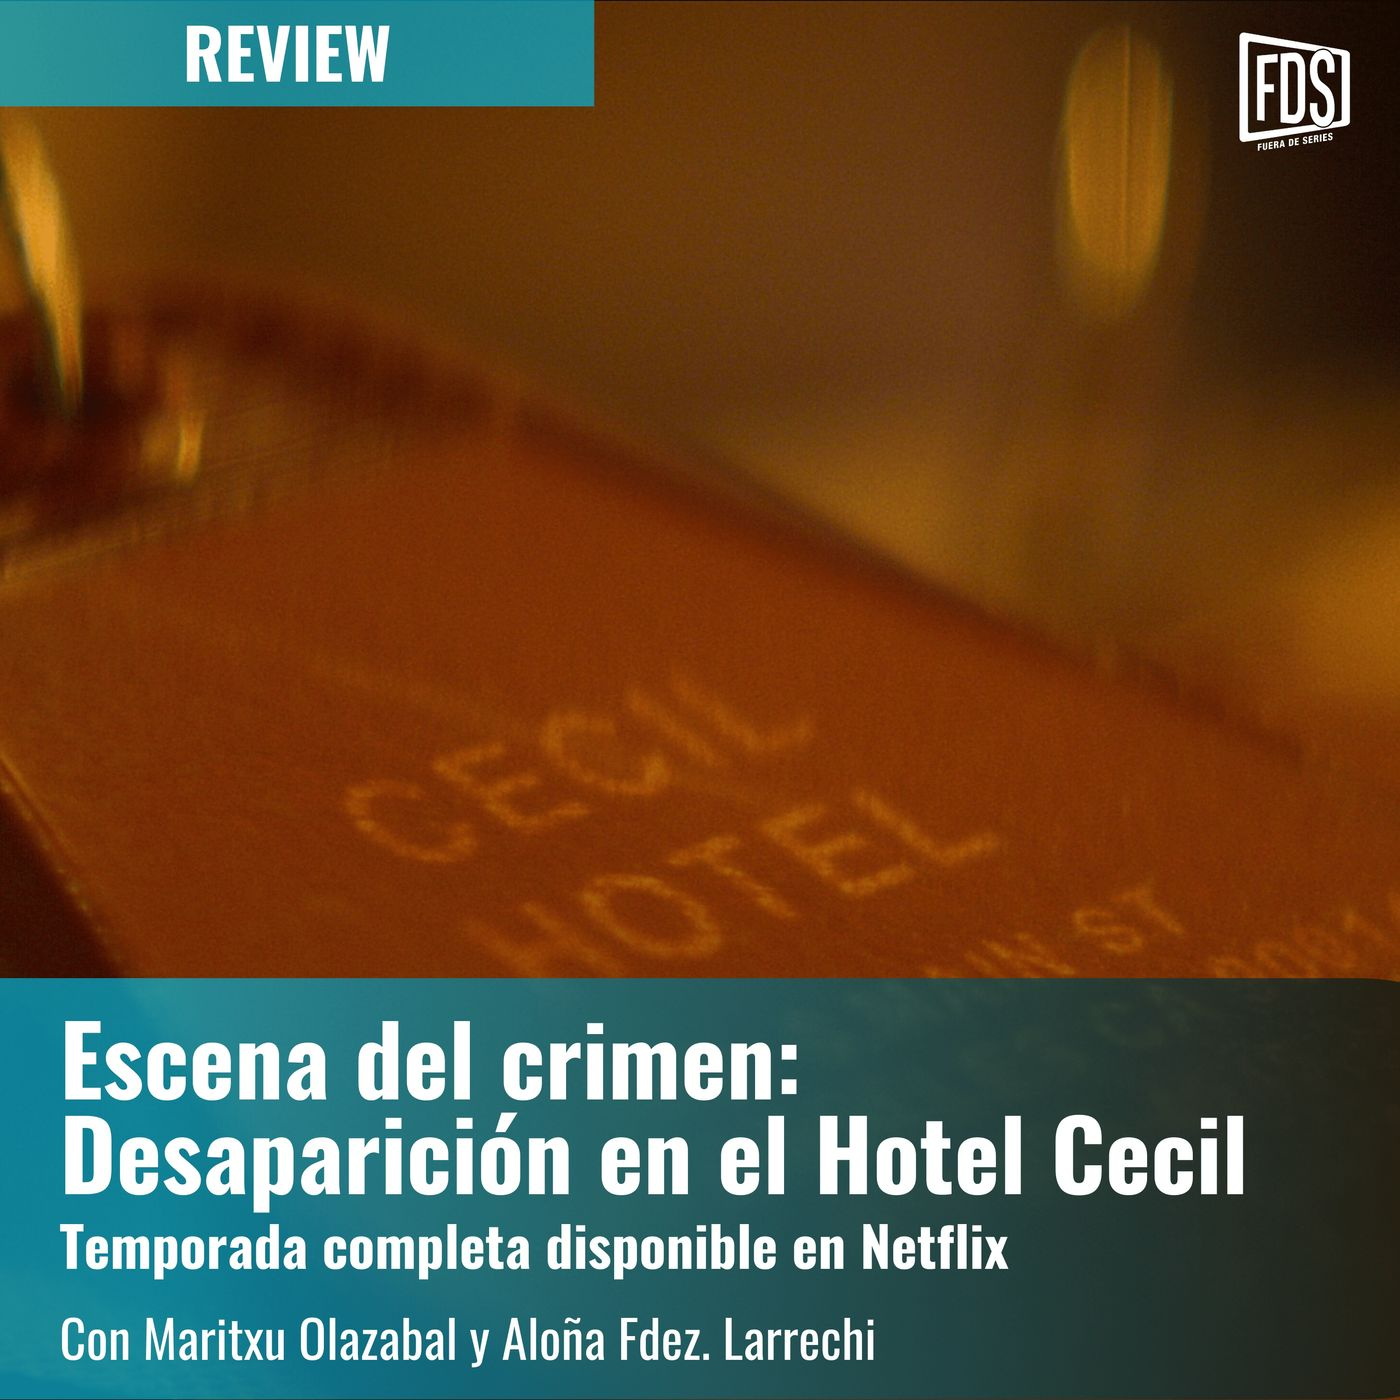 Review: Escena del crimen: Desaparición en el Hotel Cecil (disponible en Netflix)